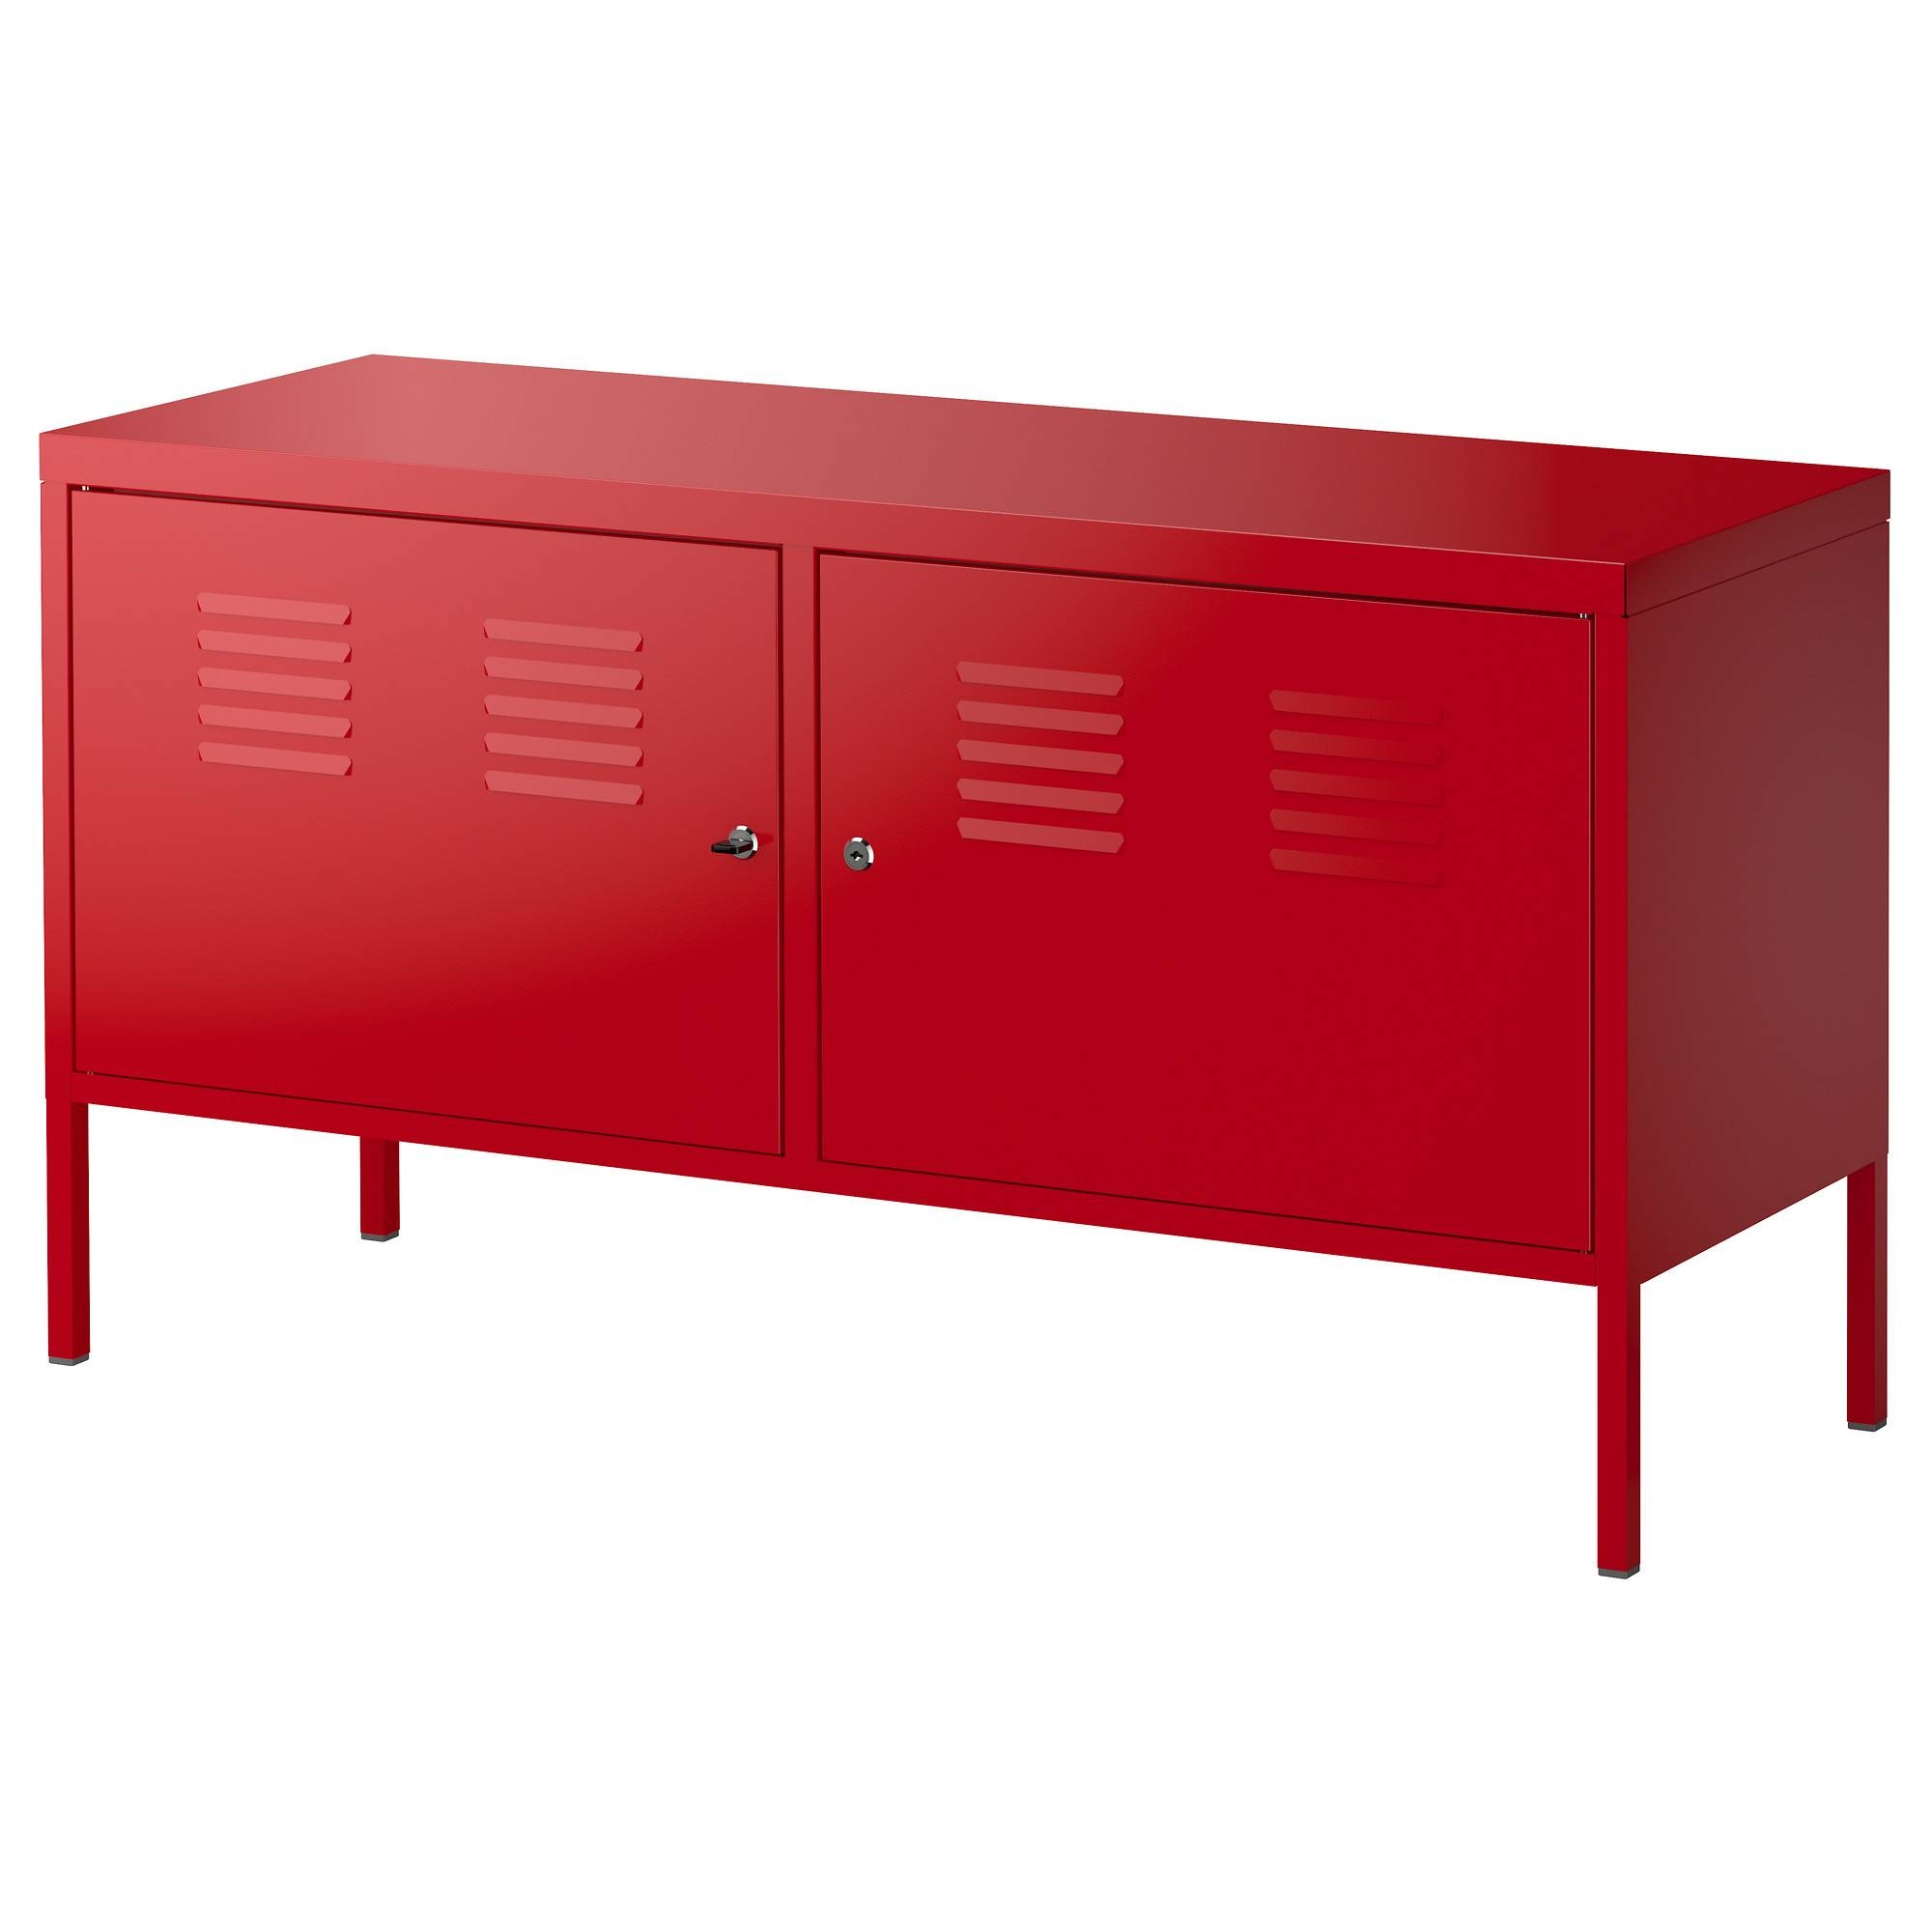 Popular Photo of Ikea Red Sideboards